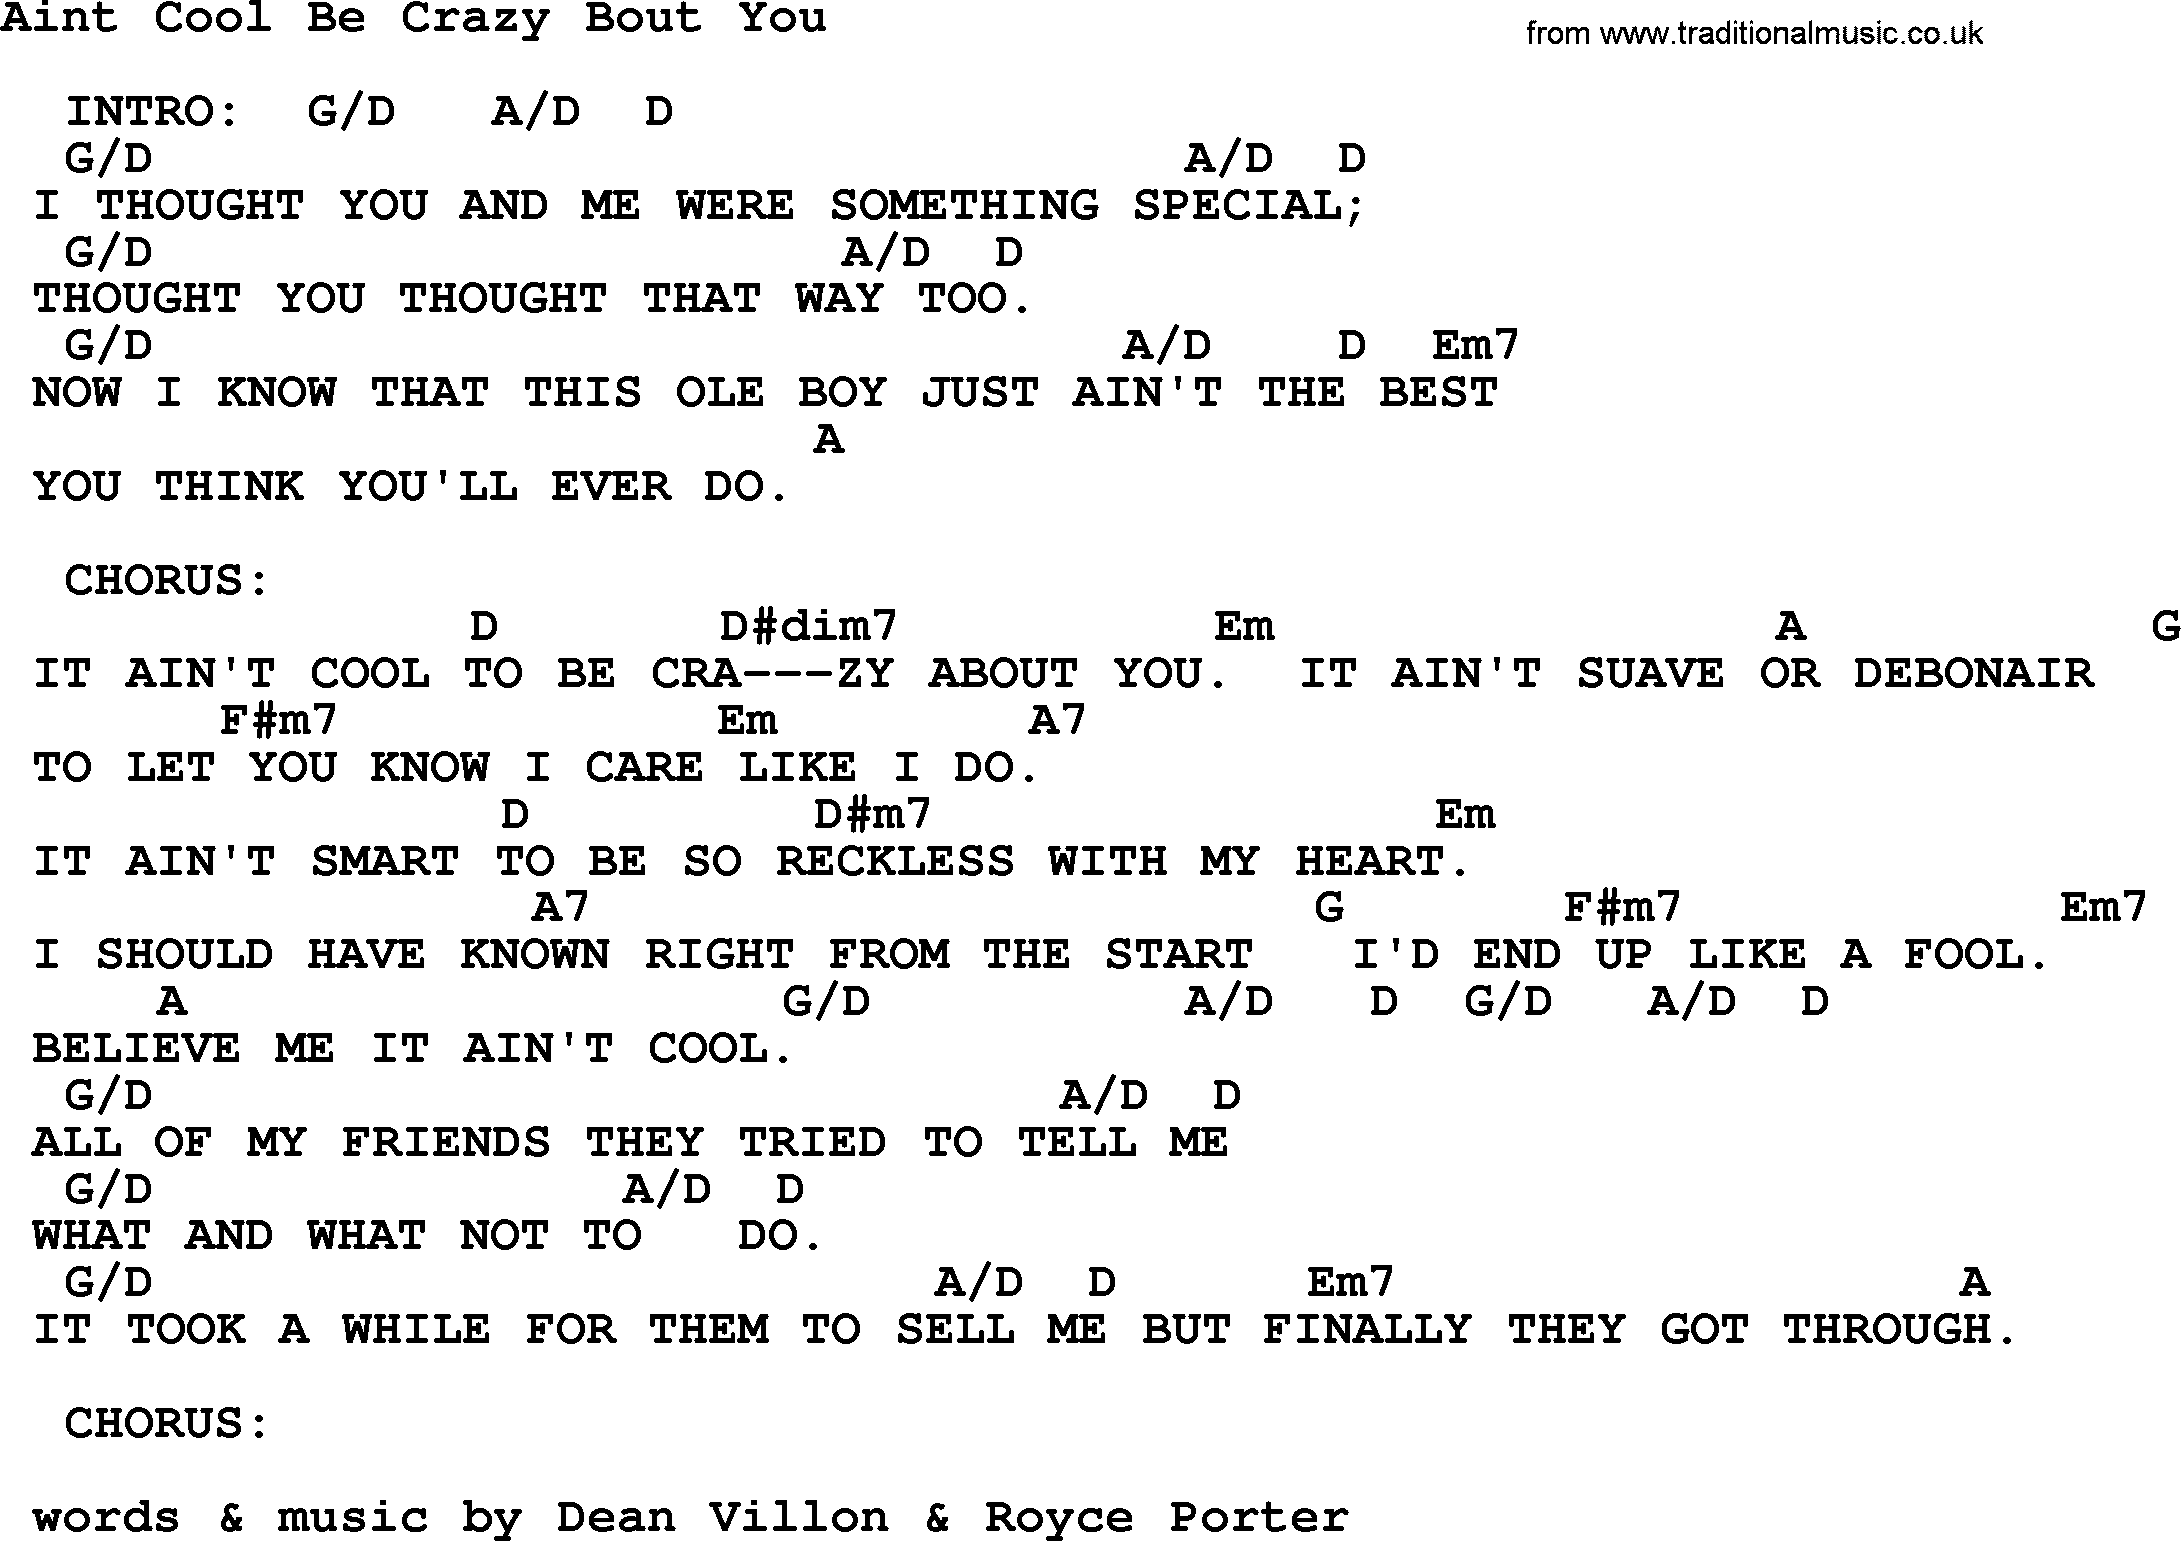 Aint Cool Be Crazy Bout You By George Strait Lyrics And Chords